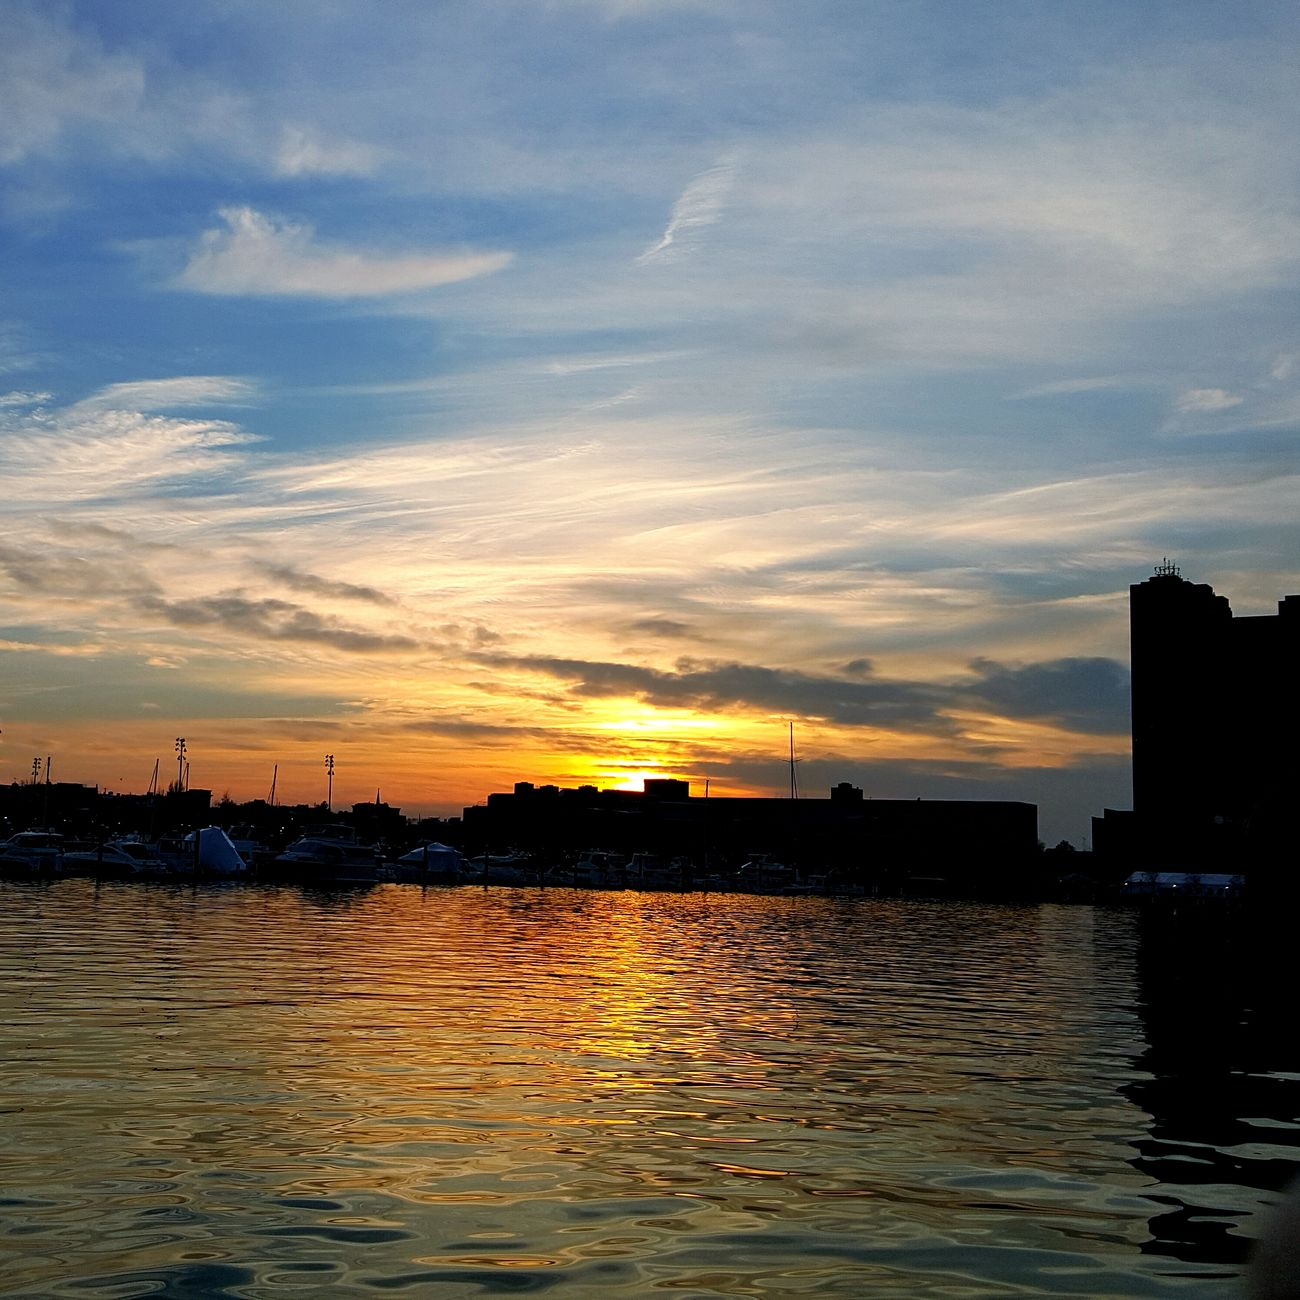 Sunset Showcase: December EyeEm Masterclass Sunset_collection AMPt_community Eye4photography  Skyporn Water Reflections Sky_collection Water_collection Popular Photos Cloudporn Sun_collection Enjoying Life Sky Sky And Clouds Skylovers at Baltimore, Baltimore City, Maryland, United States